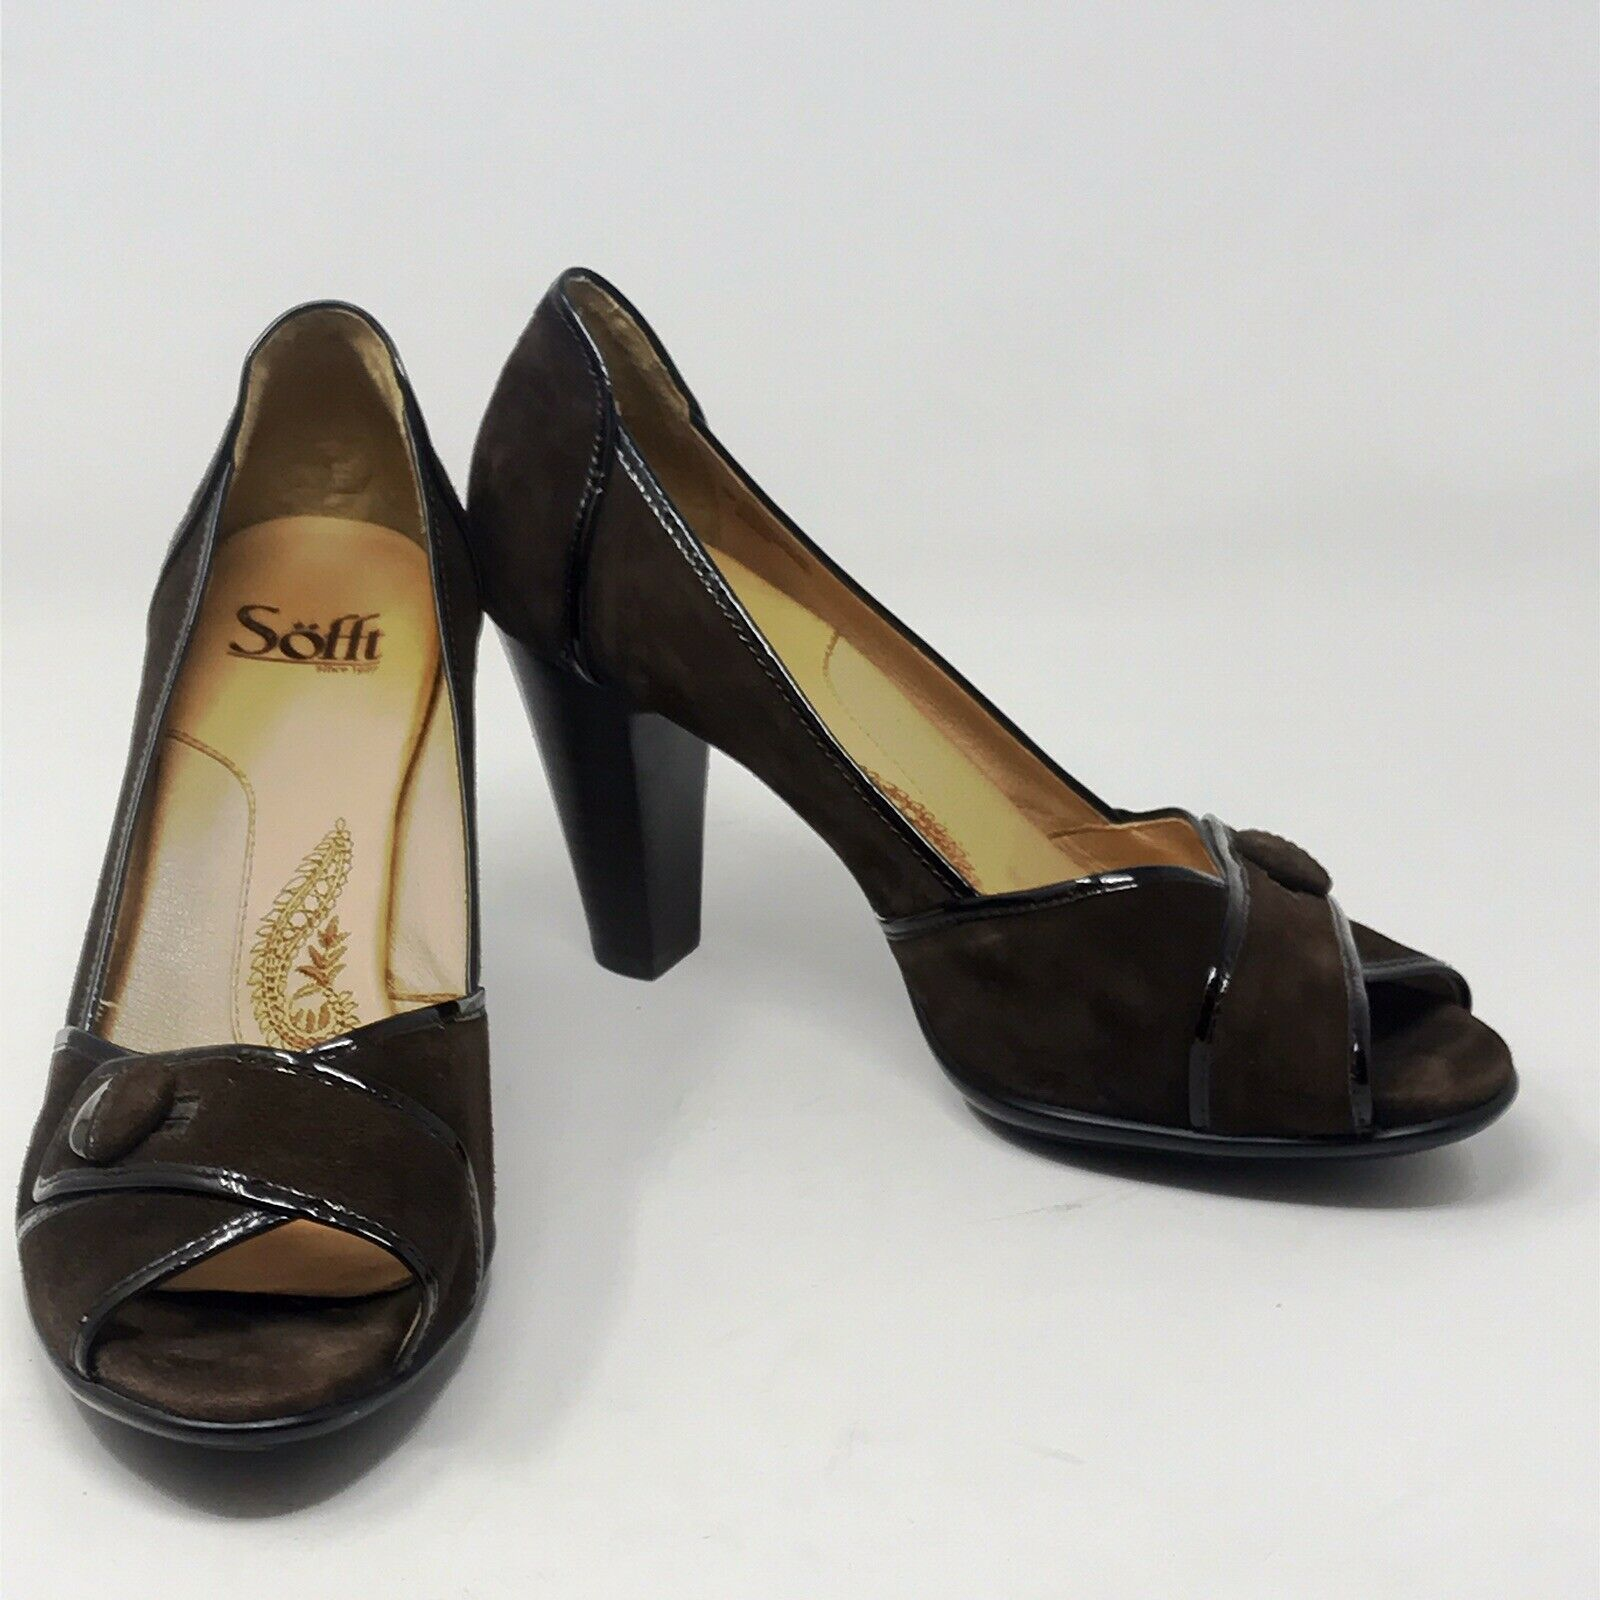 Sofft Peep-Toe Brown Suede Pumps with Patent Leather Accents Womens Sz 8 W - $24.90